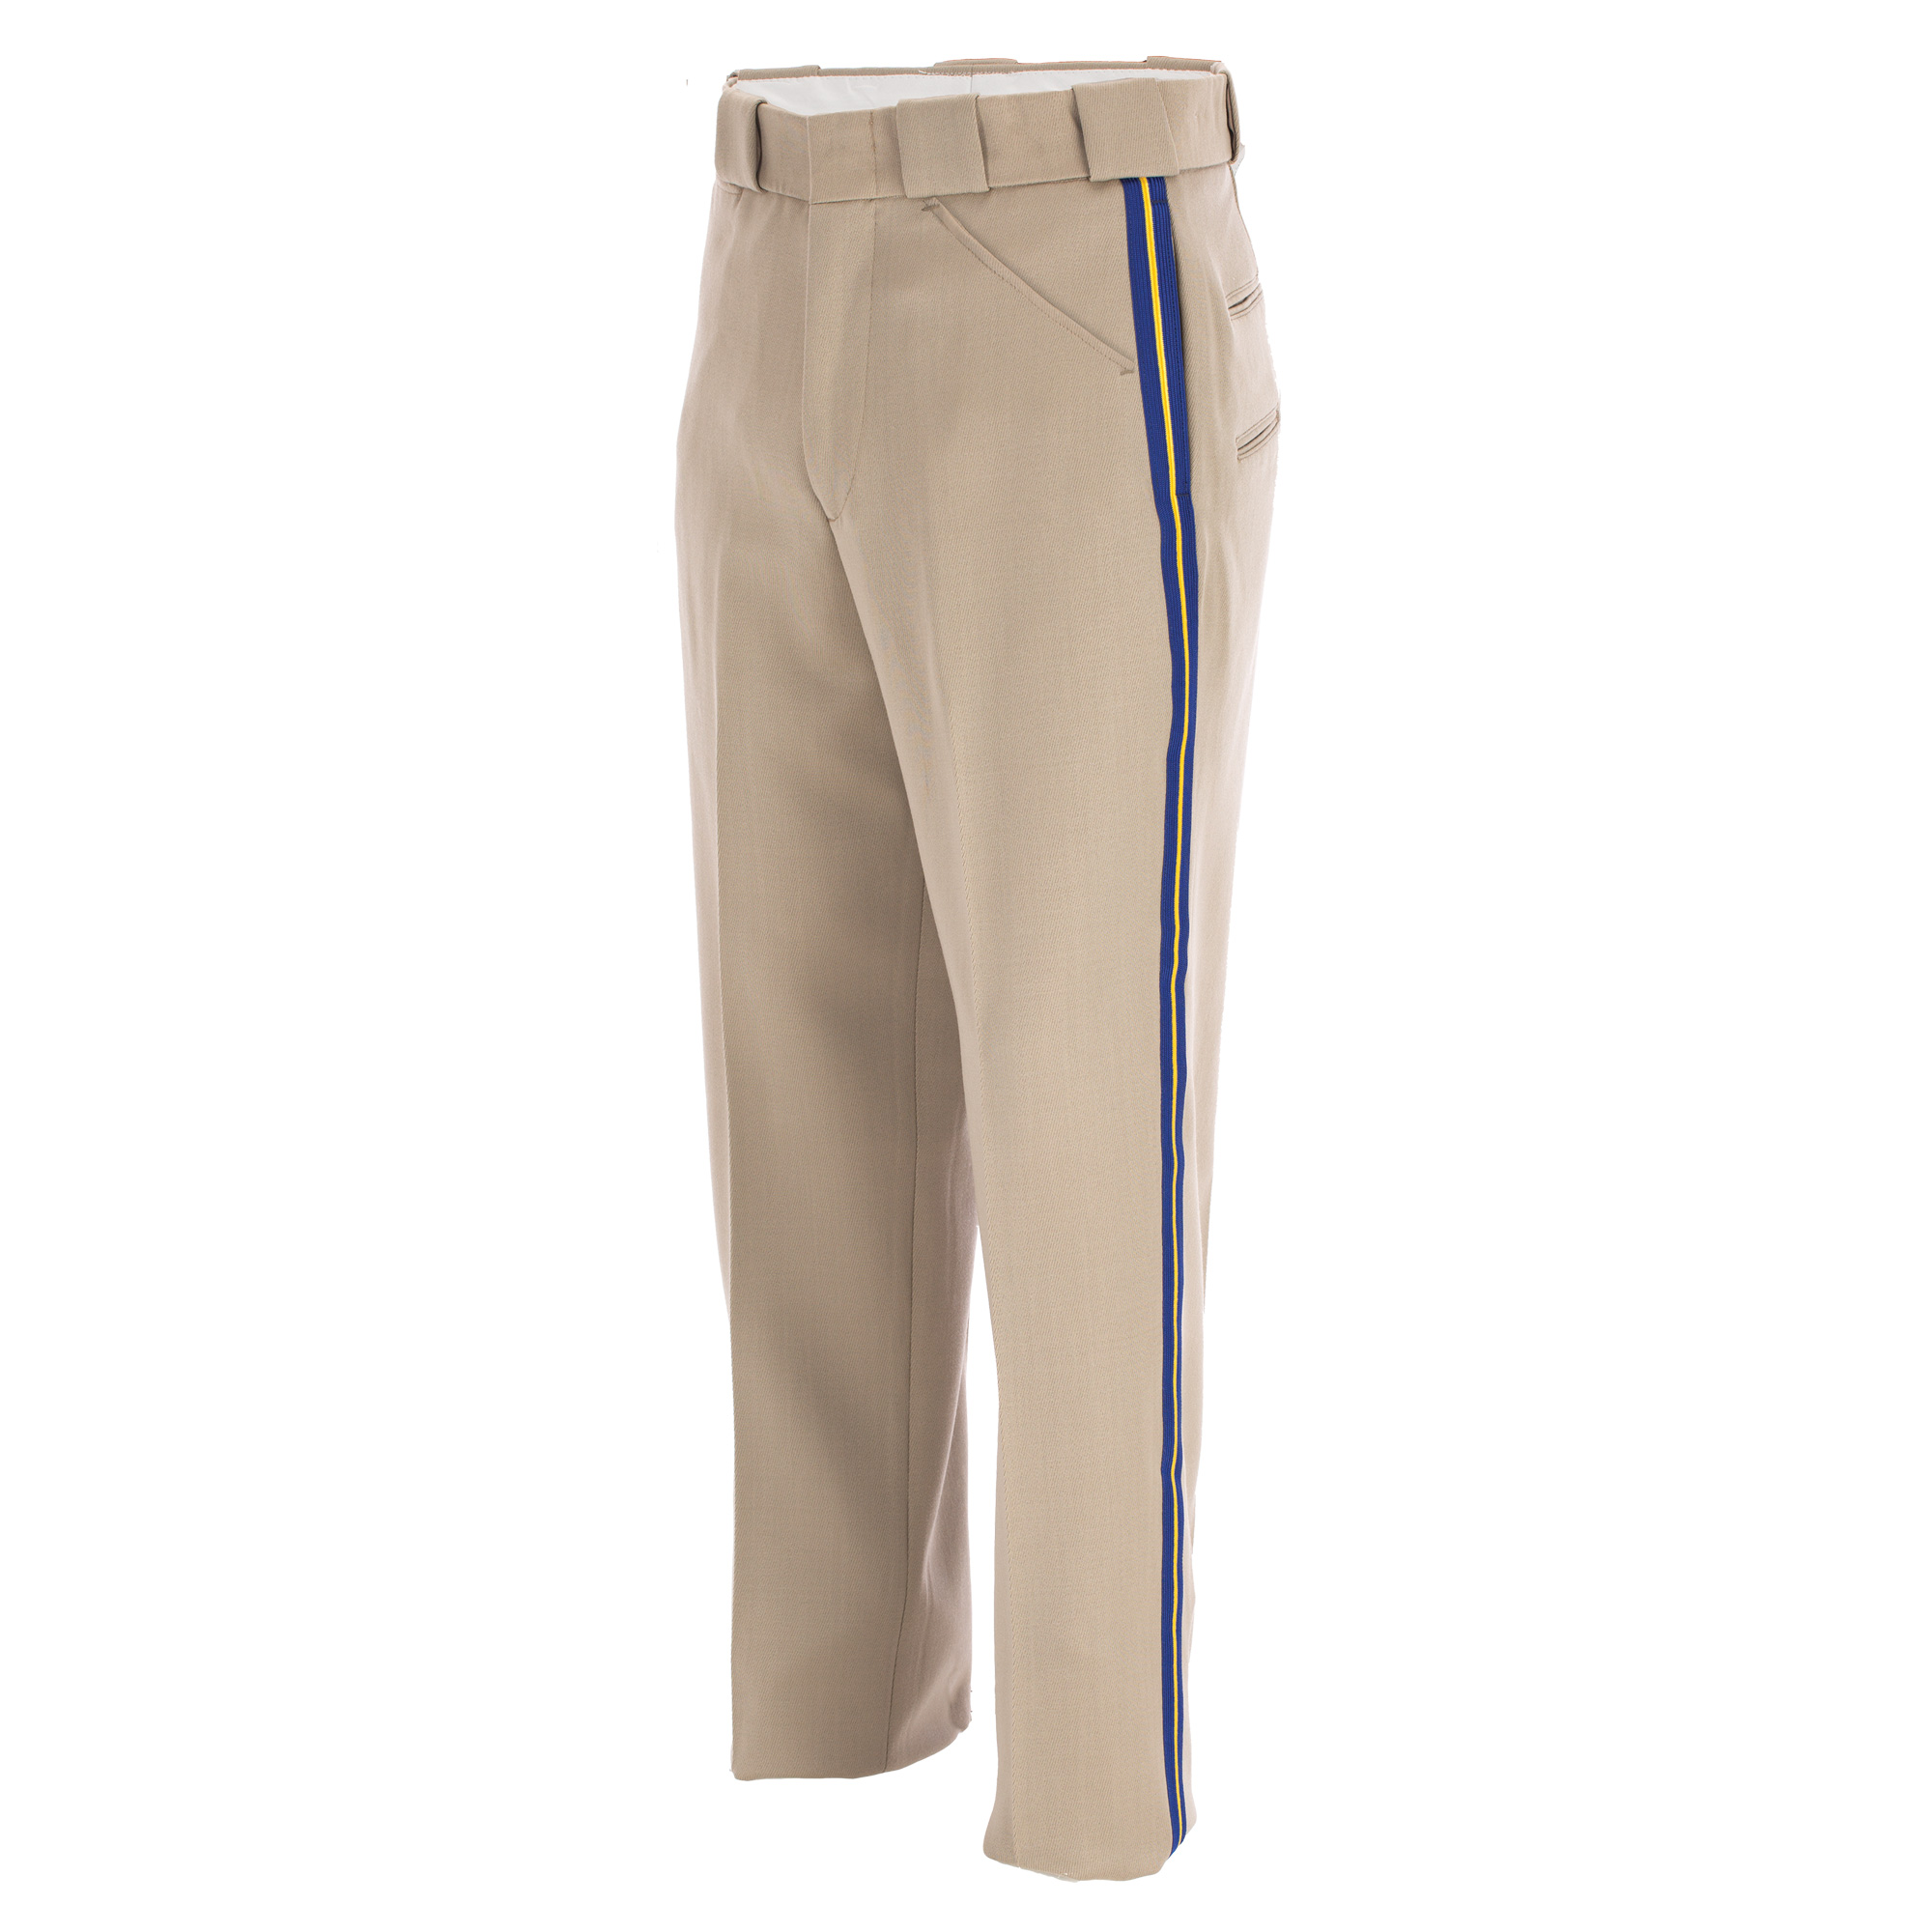 CHP Motor Breeches - 100% Worsted Wool